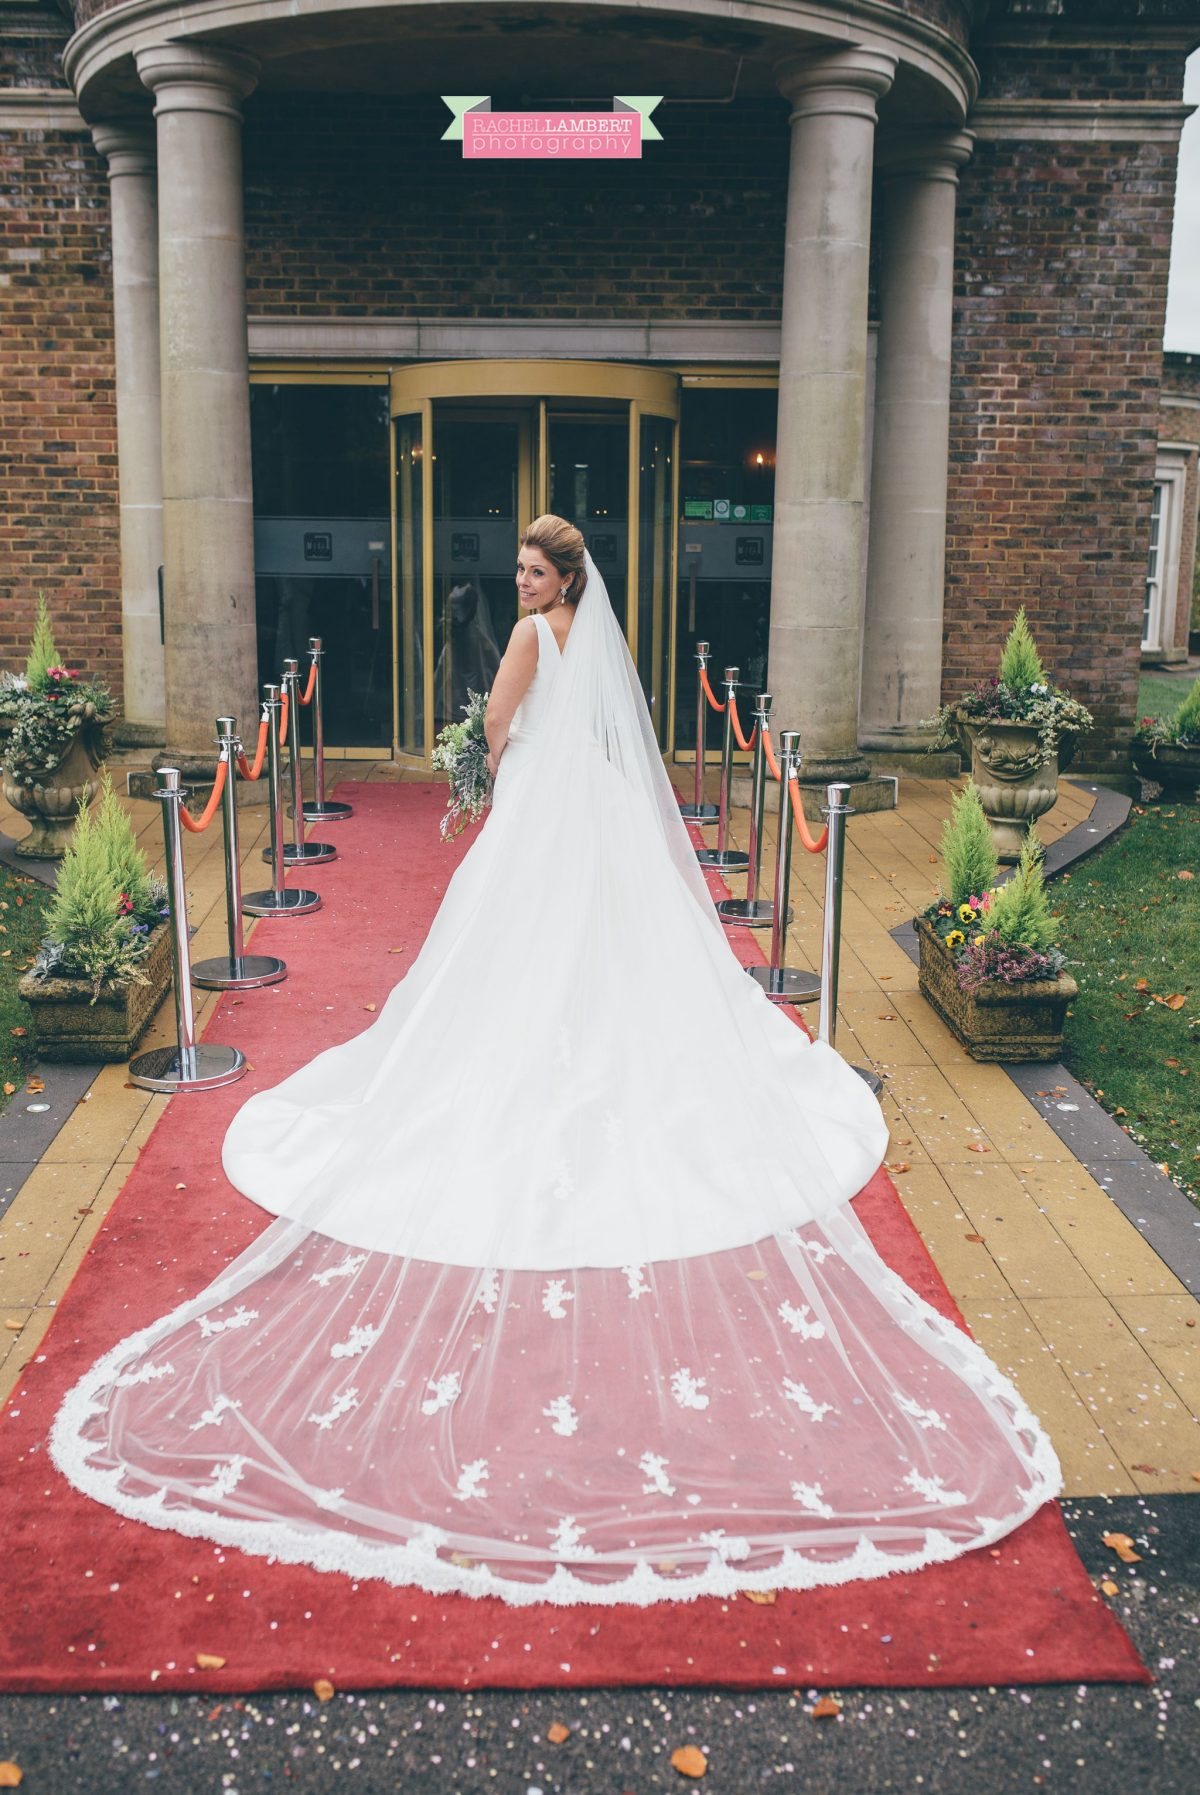 welsh_wedding_photographer_rachel_lambert_photography_decourceys_manor_cardiff_ceri_chris_ 35